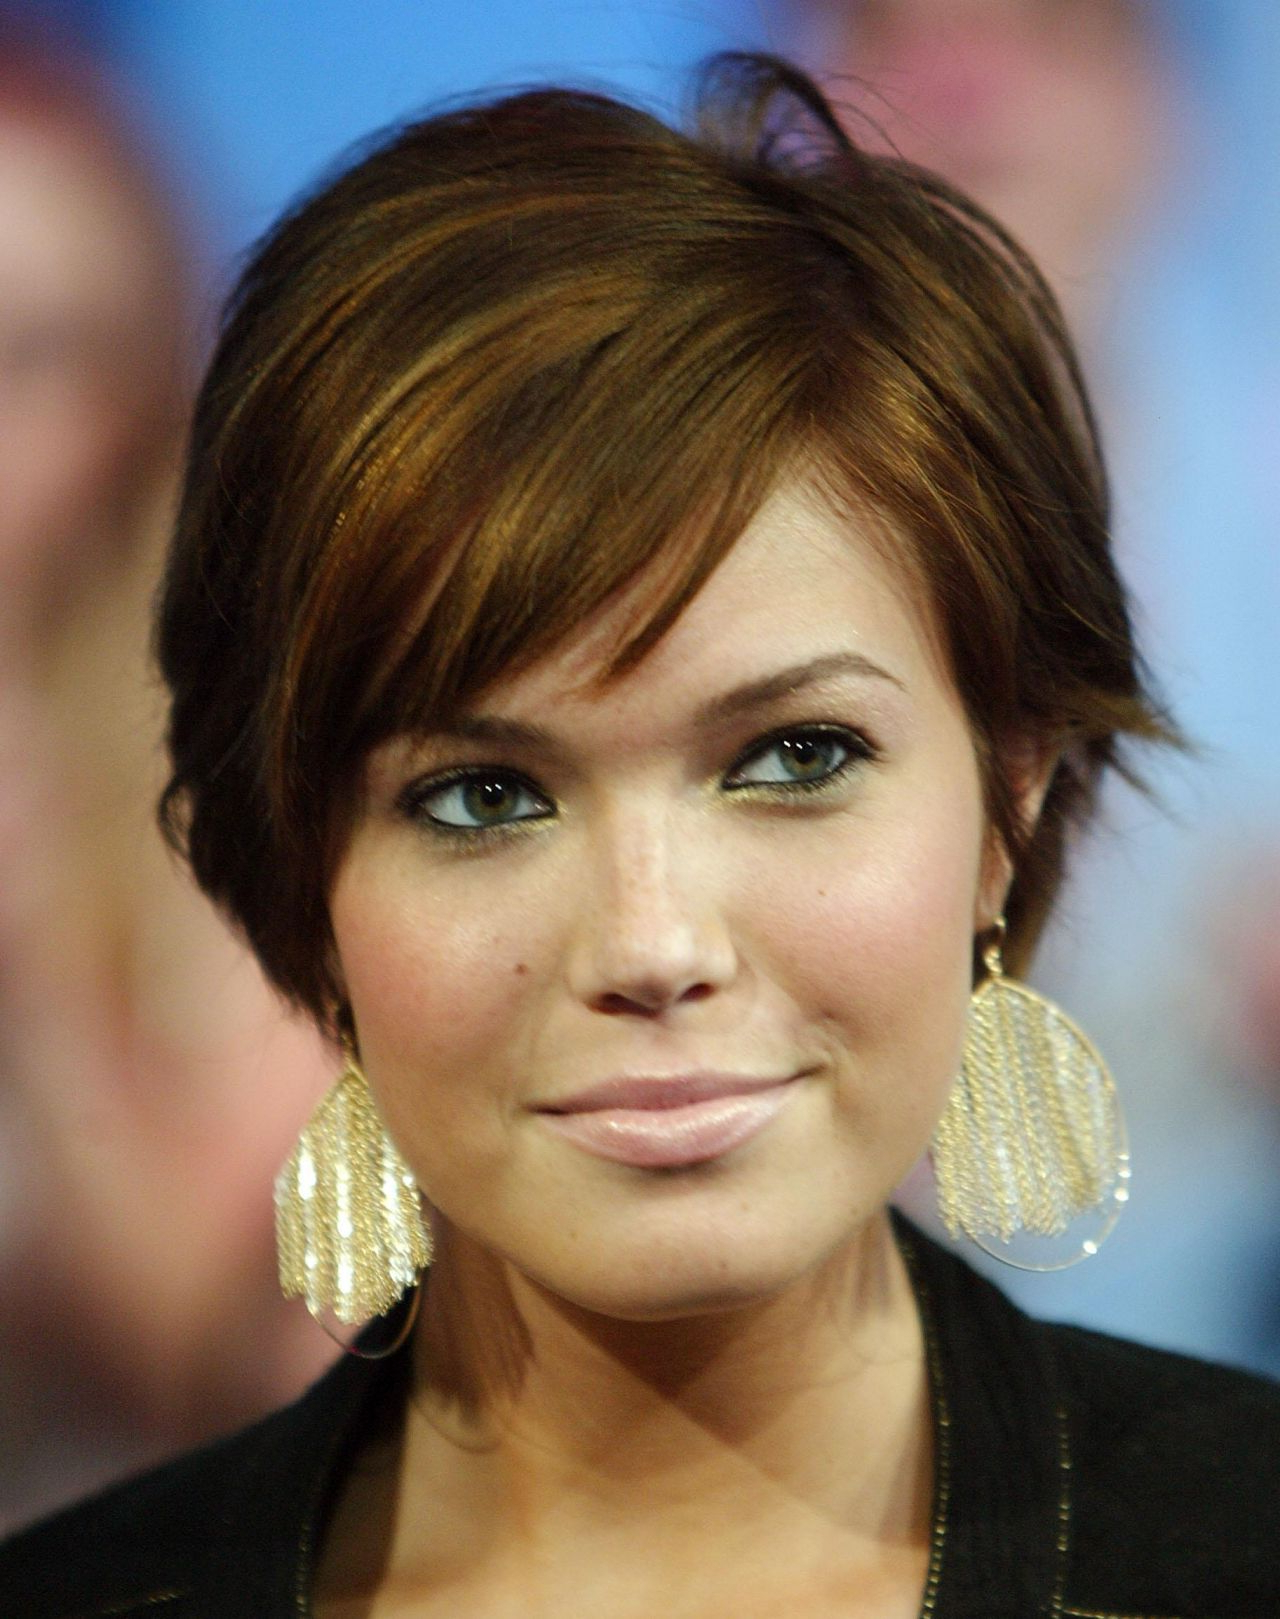 Short Female Hairstyles For Round Faces 2018   Beauty   Pinterest For Edgy Short Hairstyles For Round Faces (View 22 of 25)